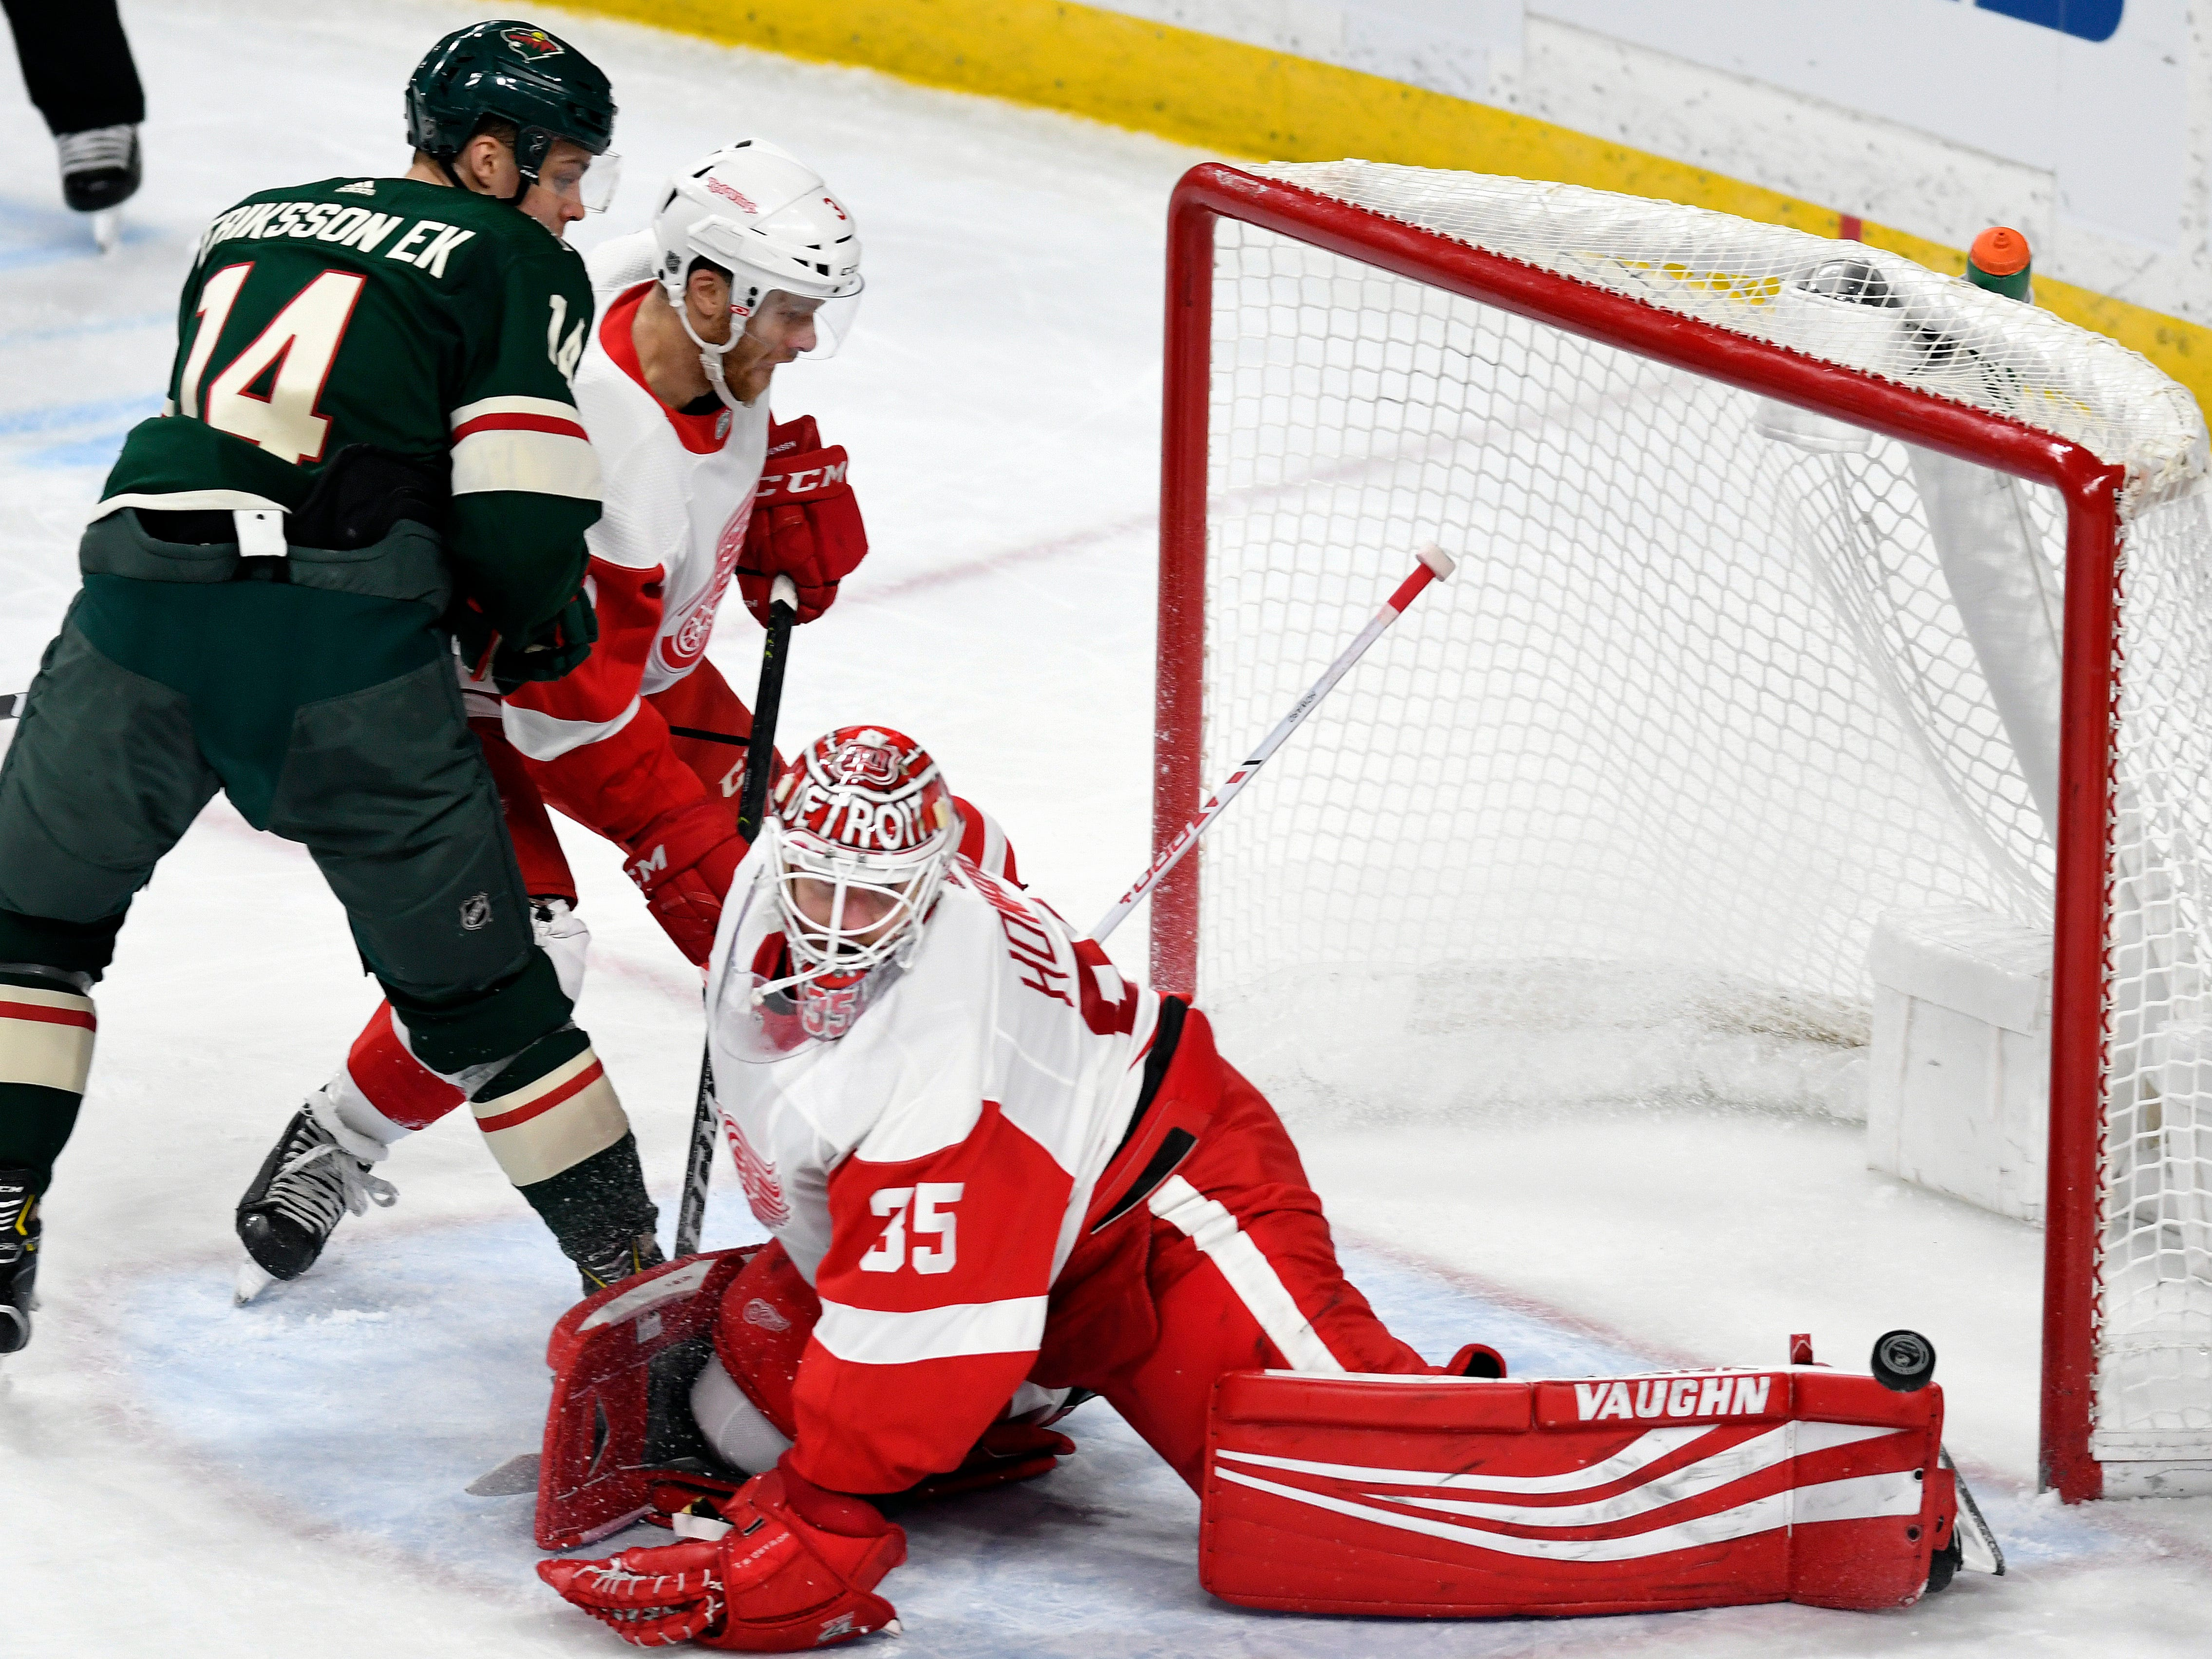 Red Wings goalie Jimmy Howard has the puck roll off the end of his pad as defenseman Nick Jensen, center, holds the Wild's Joel Eriksson Ek away from the goal during the second period of the Wings' 5-2 win on Saturday, Jan. 12, 2019, in St. Paul, Minn.